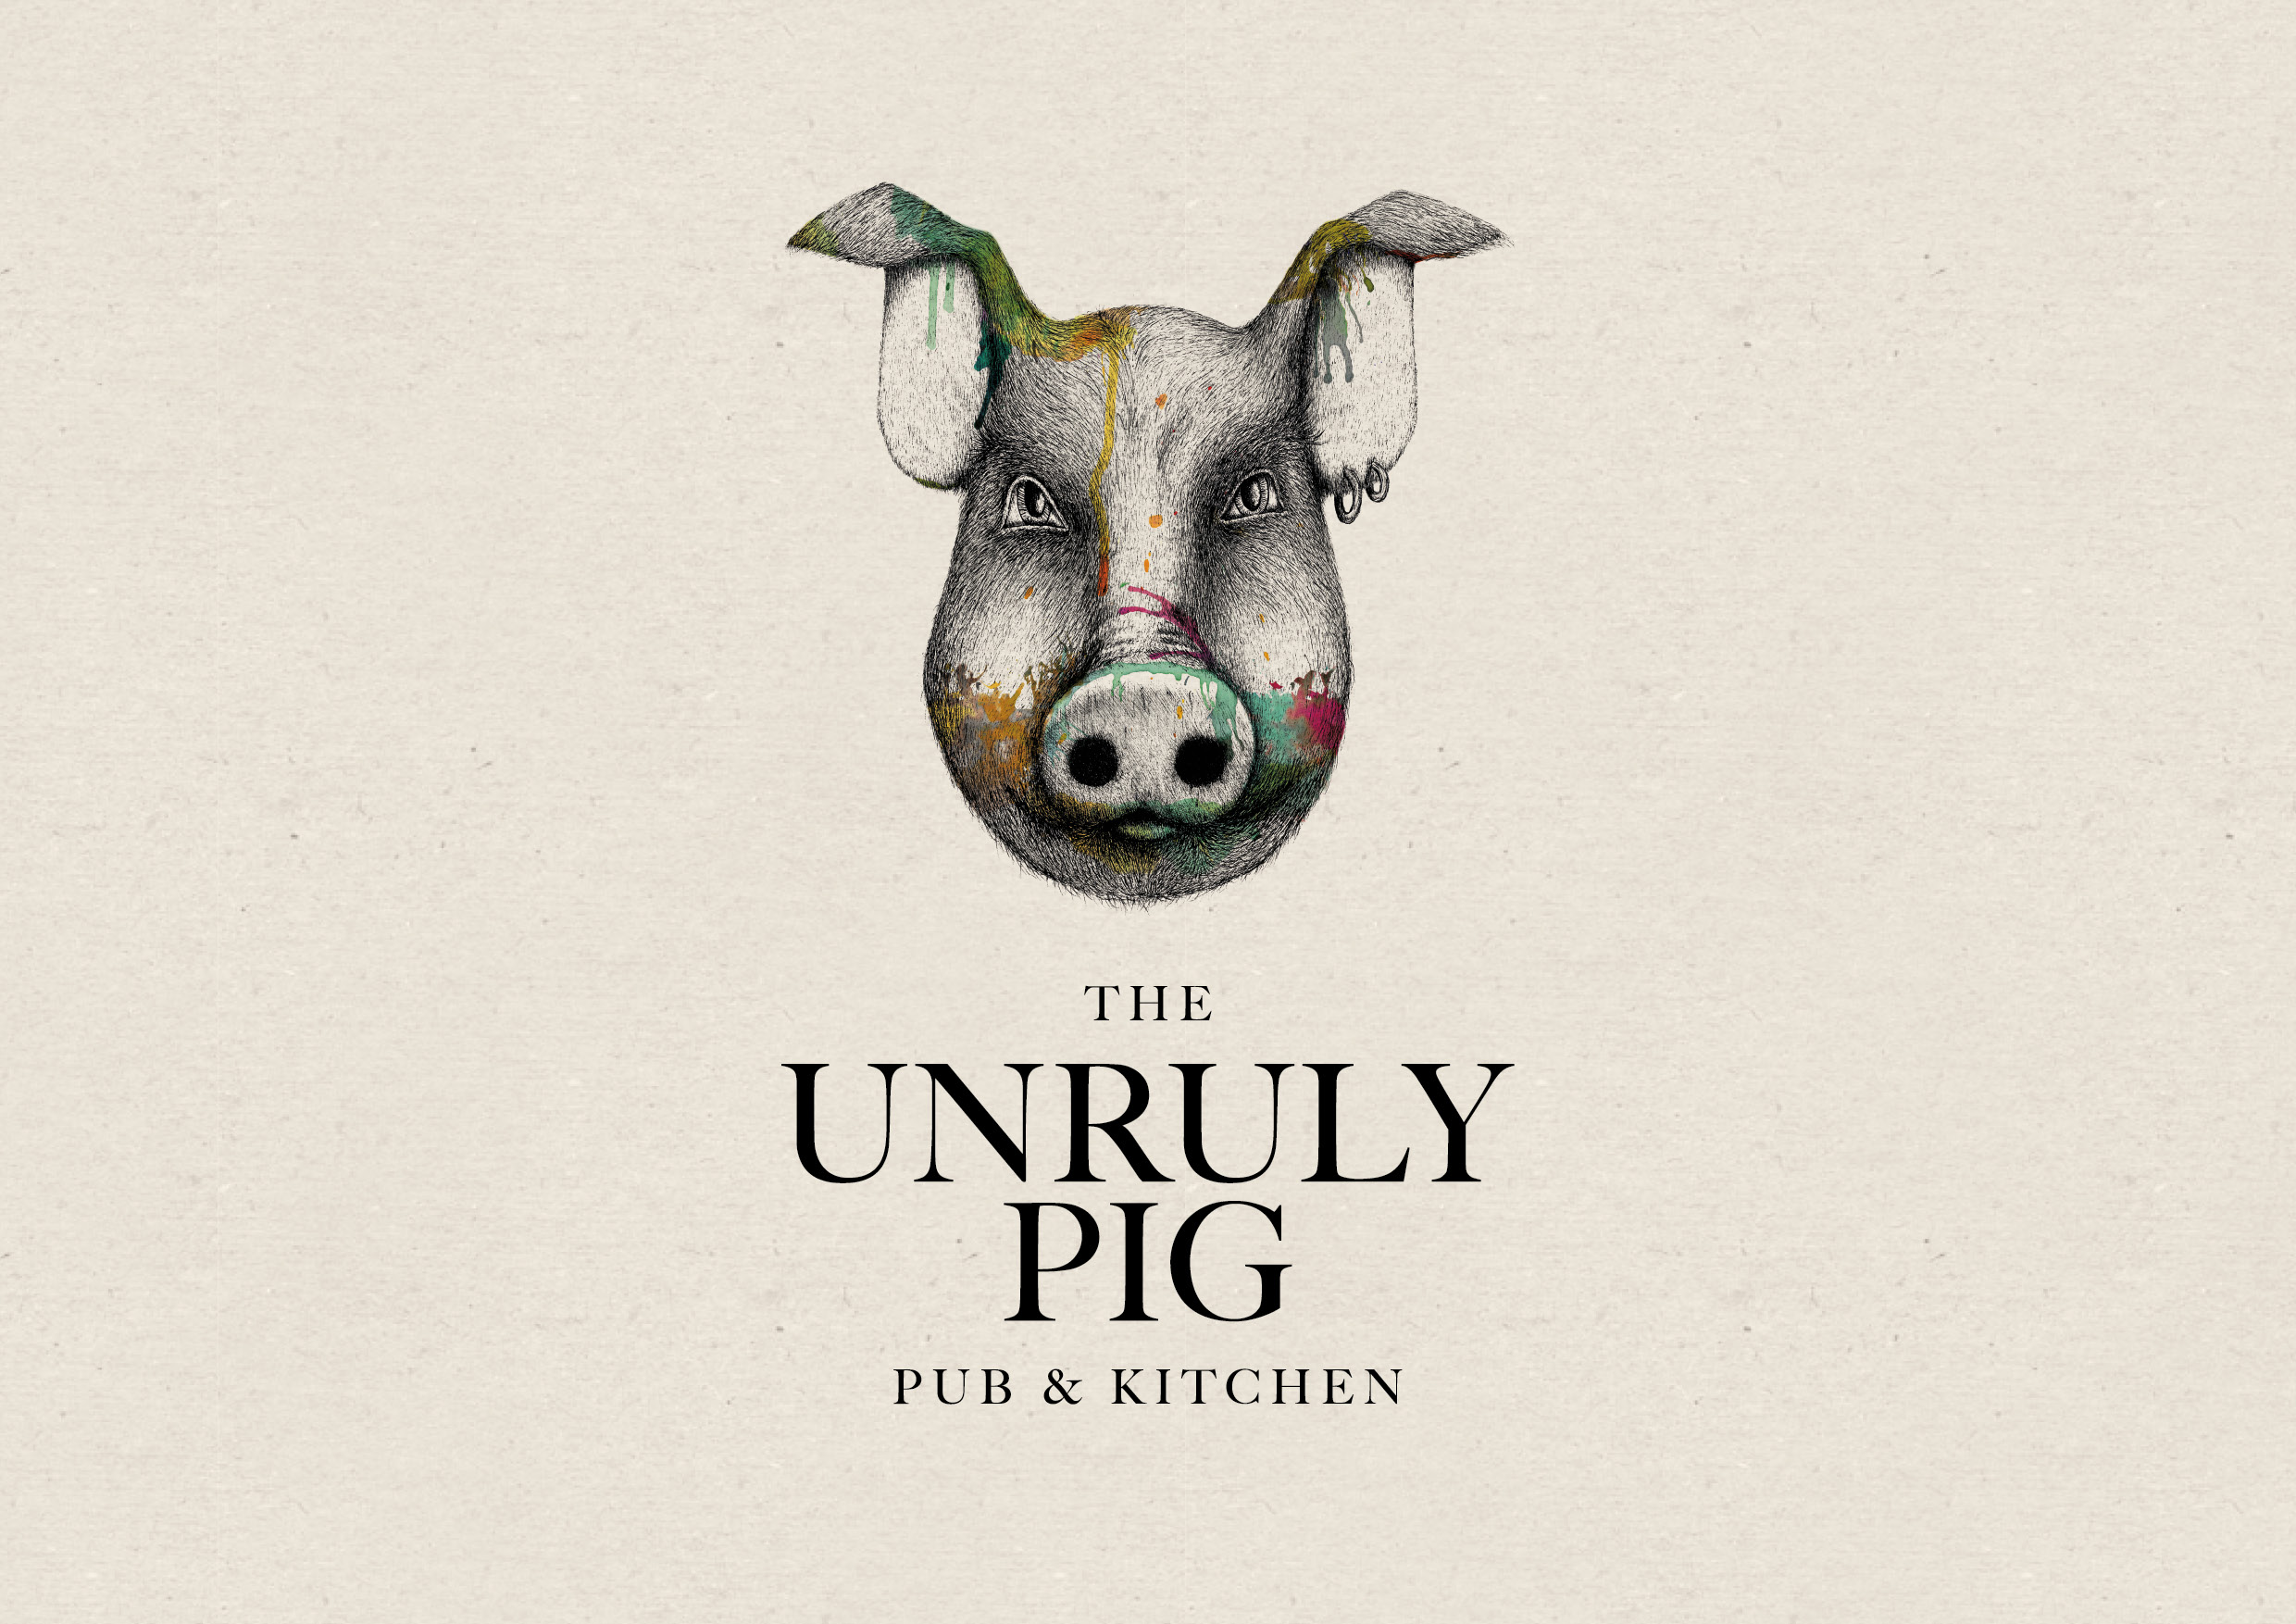 Unruly Pig nominated for a Creative Circle